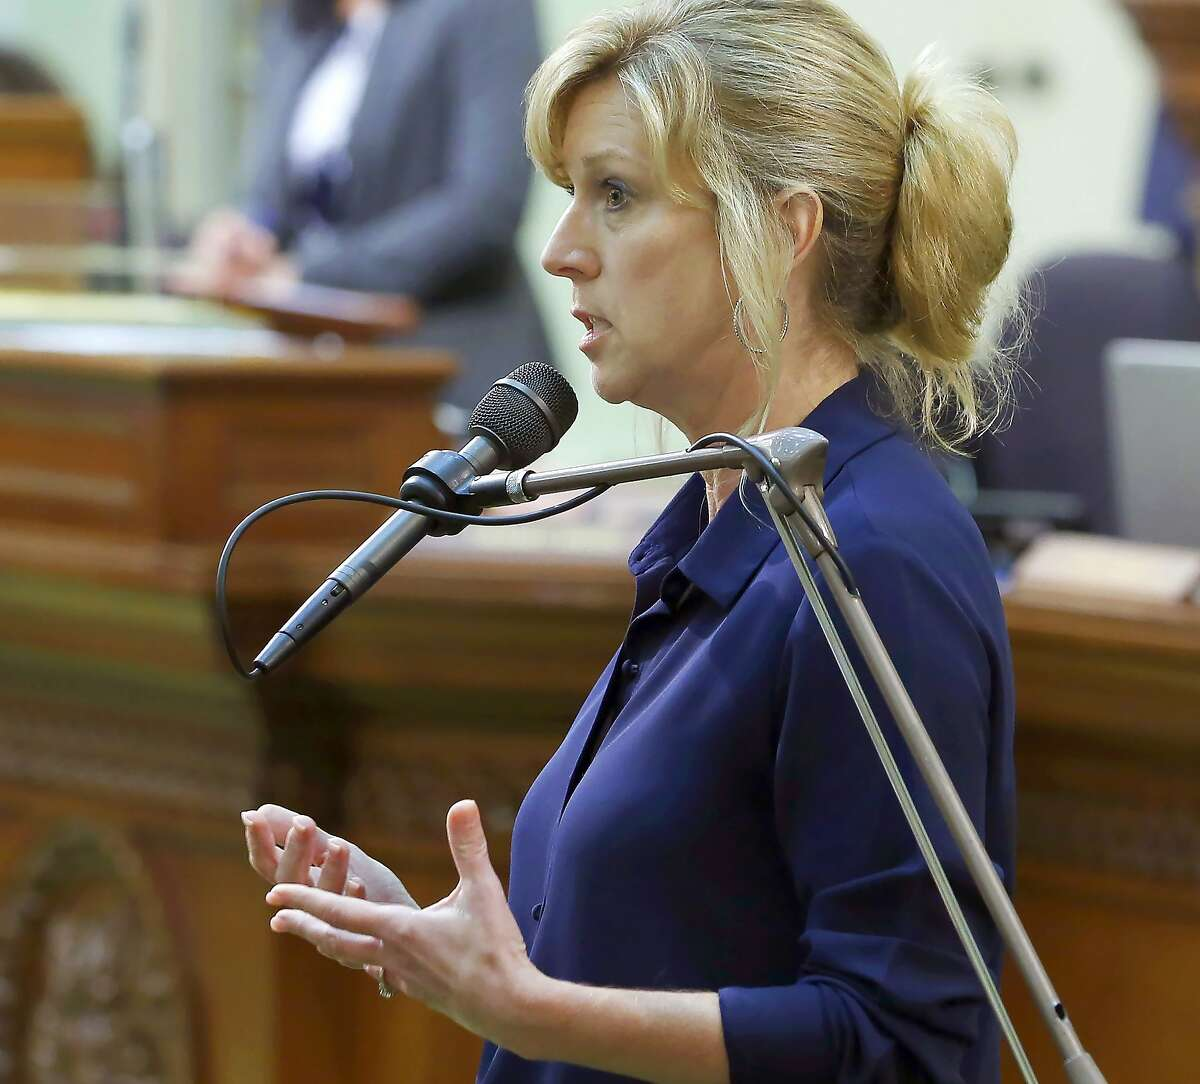 FILE - In this June 17, 2019, file photo, Assemblywoman Christy Smith, D-Santa Clarita, speaks in a session of the California Assembly in Sacramento, Calif. The fight for an open U.S. House seat in a swing district north of Los Angeles provides Republicans with a rare opportunity to gain ground in heavily Democratic California, and the outcome could send a message about where voters place their trust during the coronavirus crisis. The toss-up contest between Republican Mike Garcia and Democrat Smith will inevitably be seen as a proxy vote on President Donald Trump's leadership during the crisis. (AP Photo/Rich Pedroncelli, File)